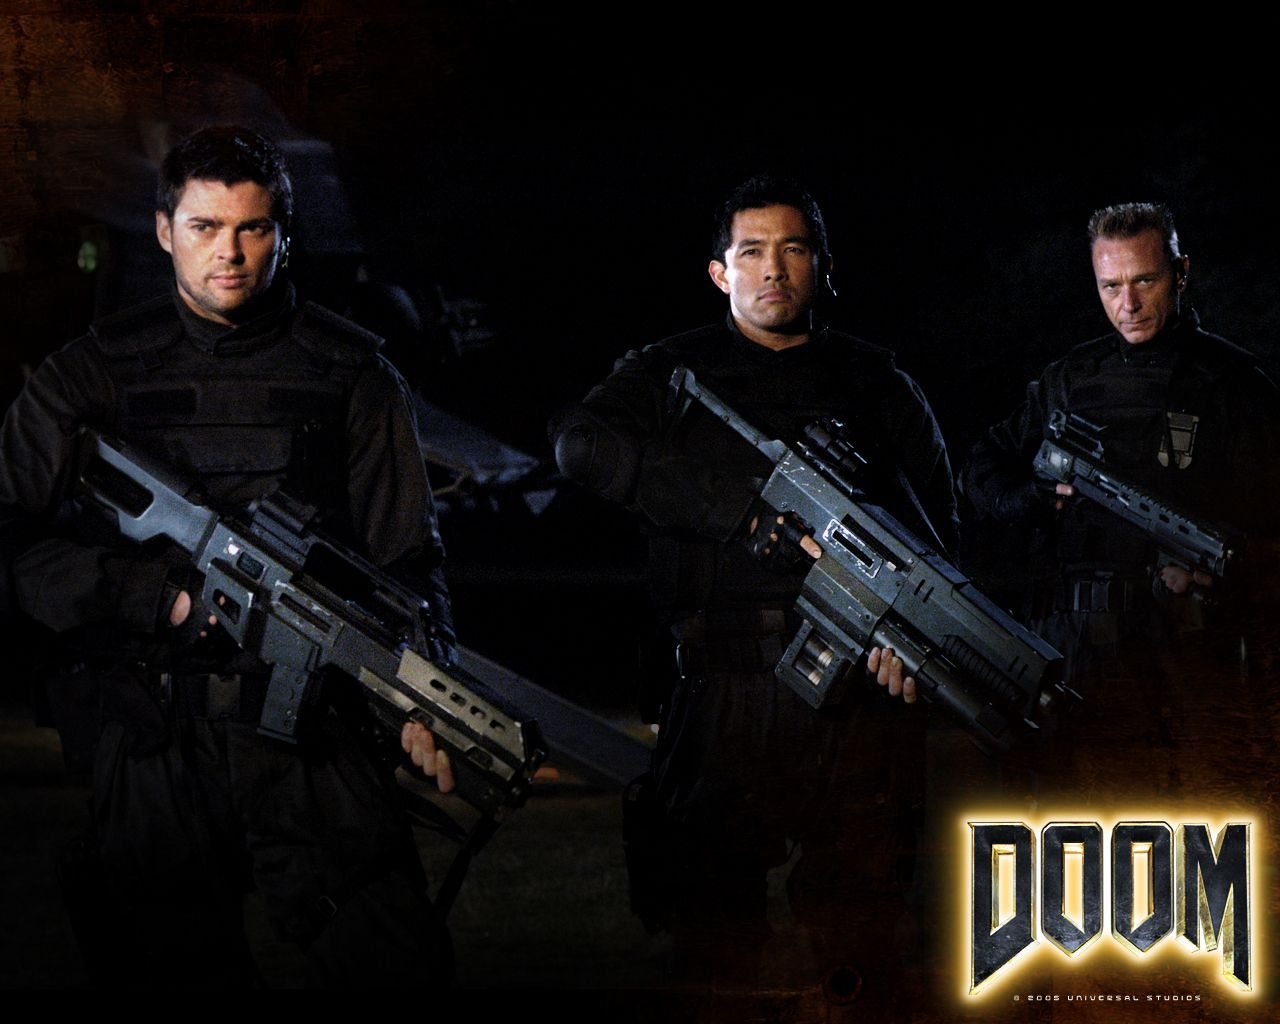 Watch Streaming HD Doom, starring Karl Urban, Rosamund Pike, Dwayne Johnson, Deobia Oparei. Space Marines are sent to investigate strange events at a research facility on Mars but find themselves at the mercy of genetically enhanced killing machines. #Action #Adventure #Horror #Sci-Fi #Thriller http://play.theatrr.com/play.php?movie=0419706